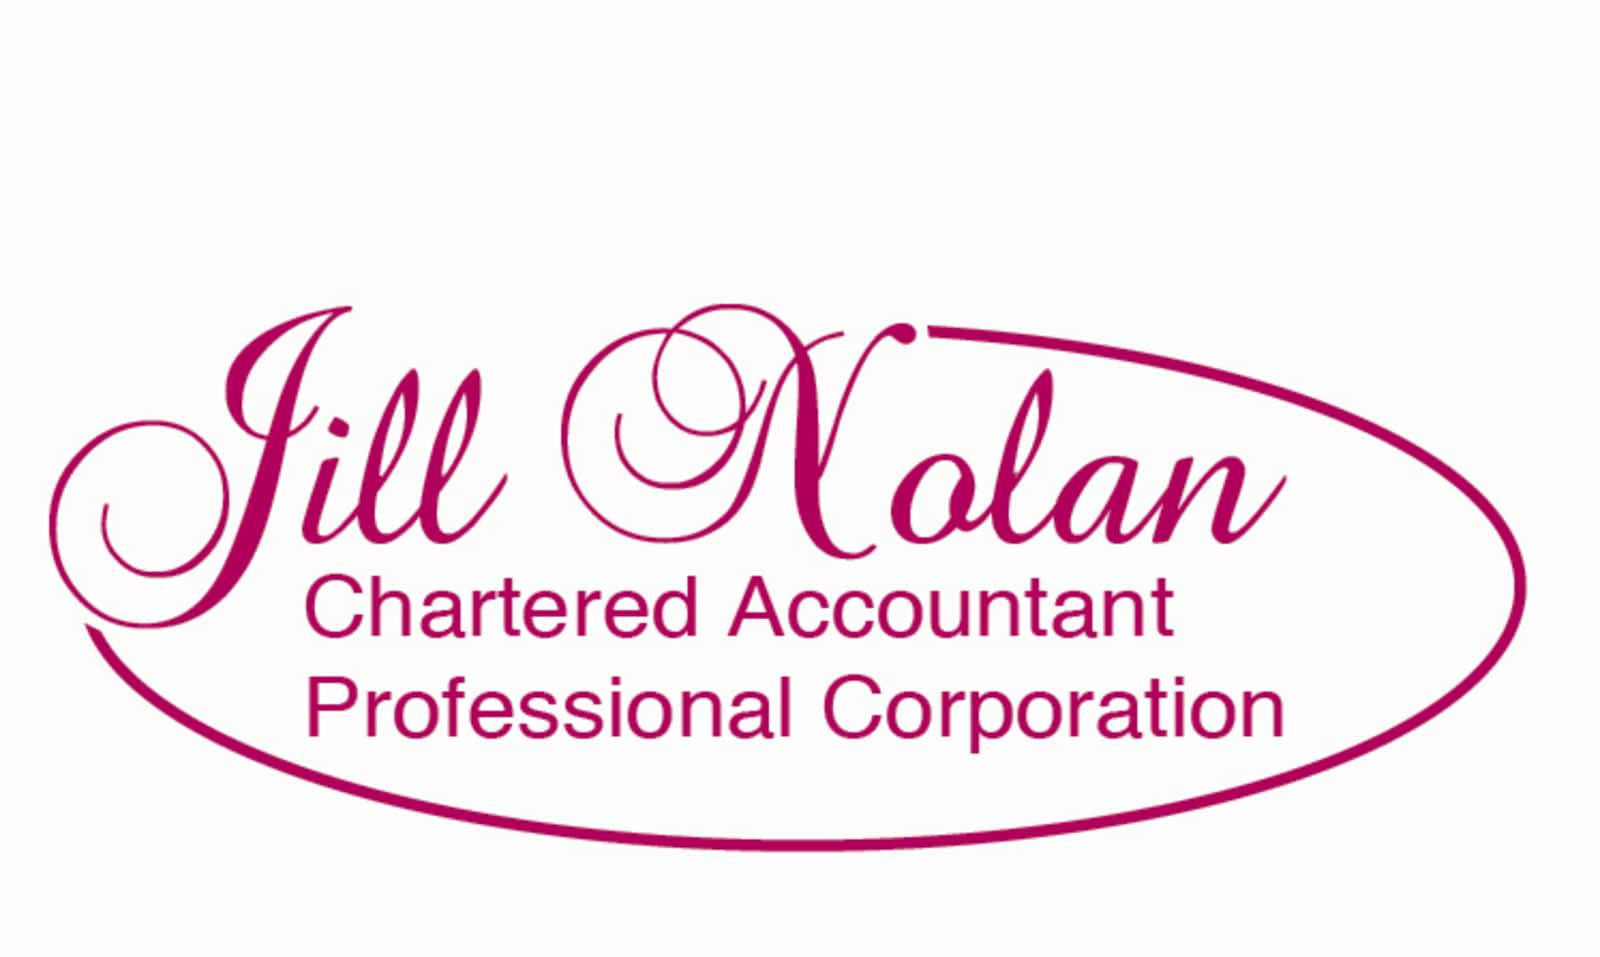 Chartered Accountant Cpa Nolan Jill E Cpa Opening Hours 54 North St Perth On